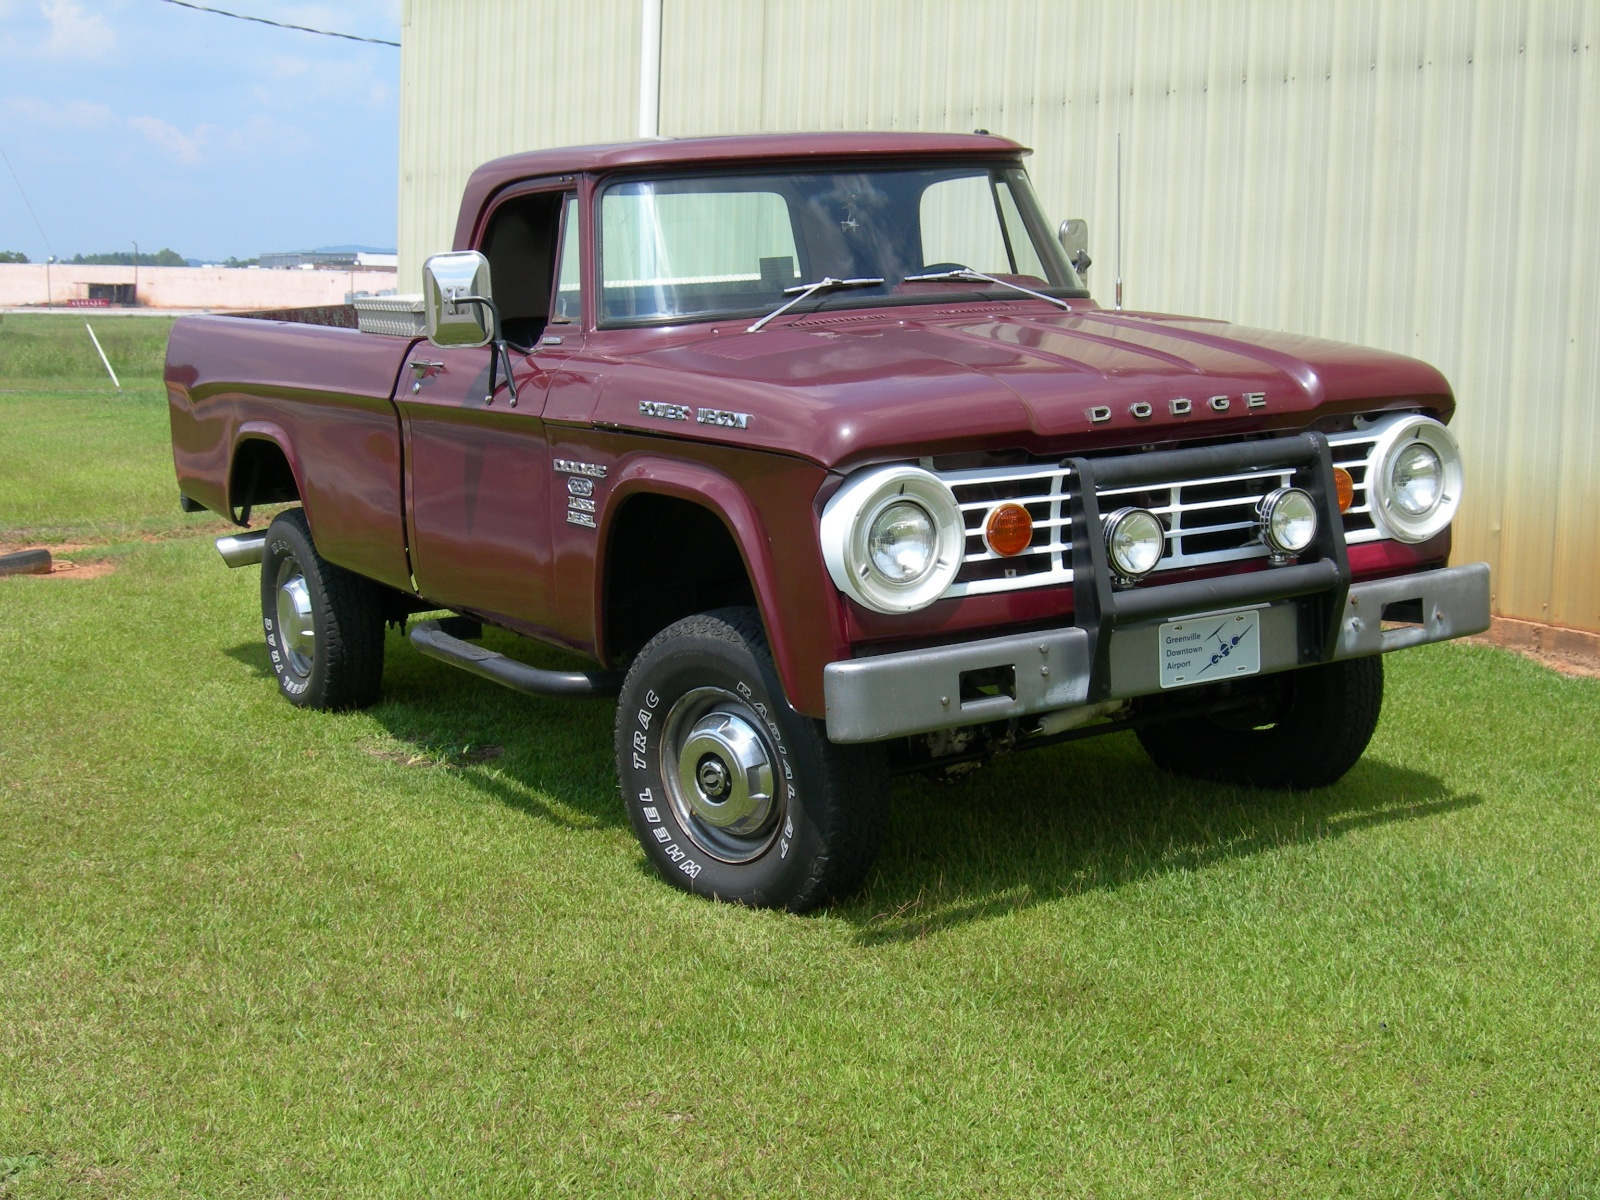 1967 Dodge Power Wagon Overview C6657 on 1956 dodge d200